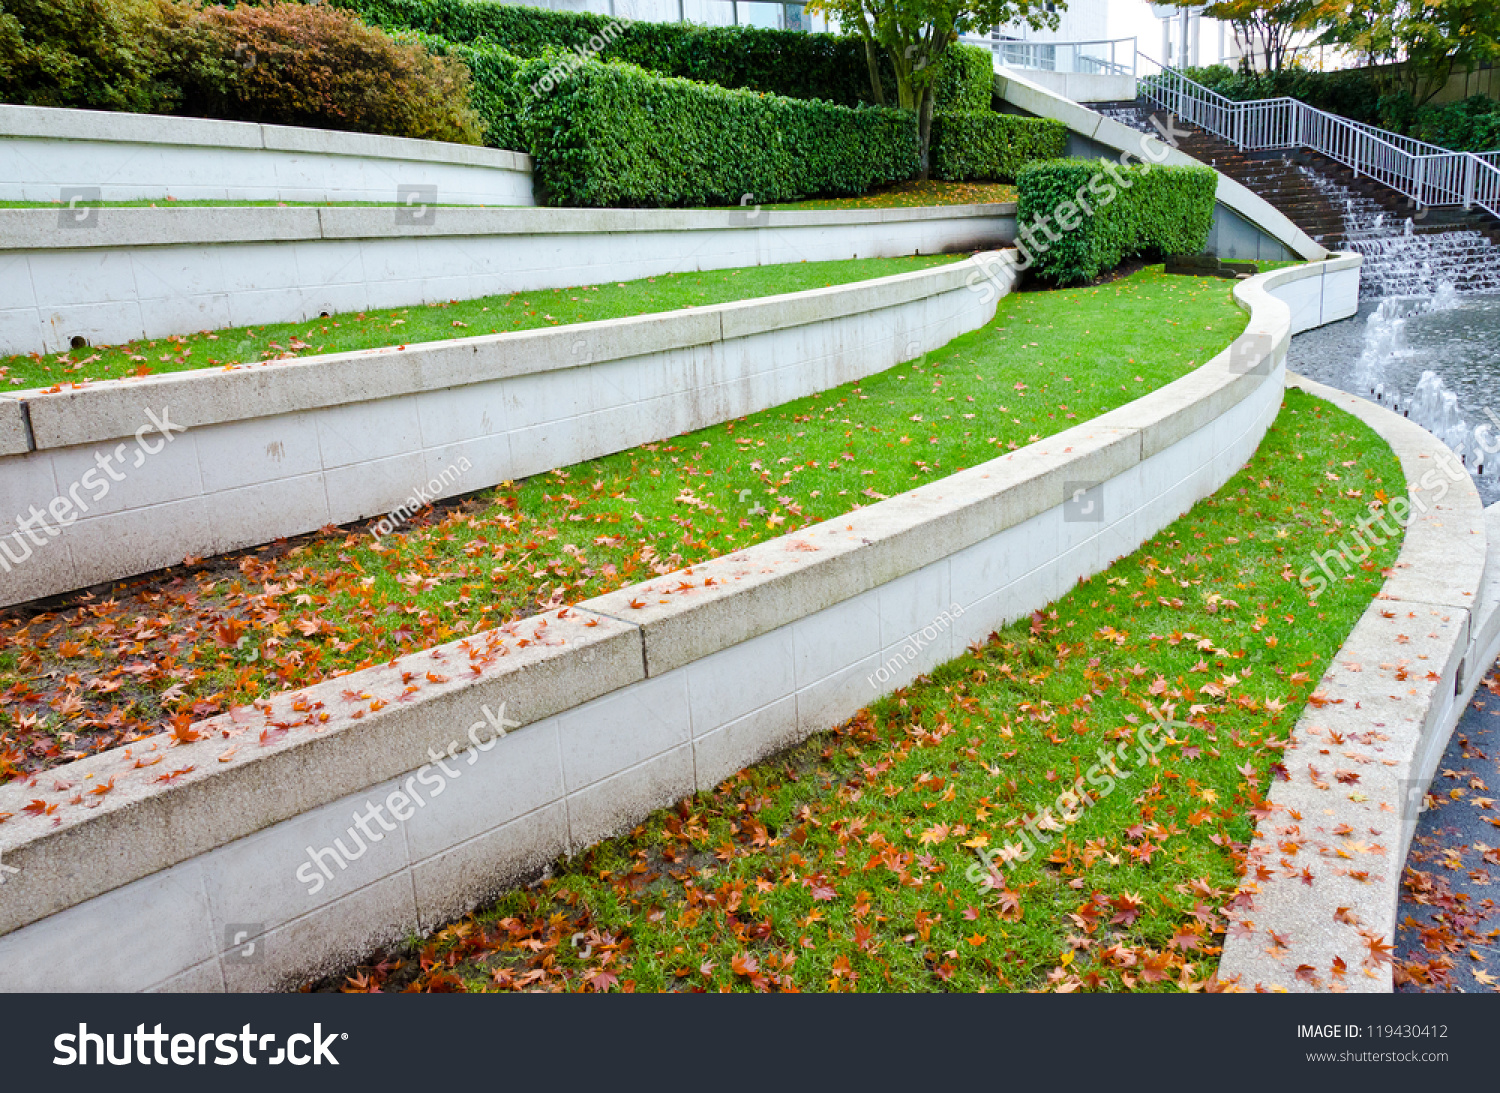 Leveled terraces with grass and fountains in a city plaza for Landscape design canada